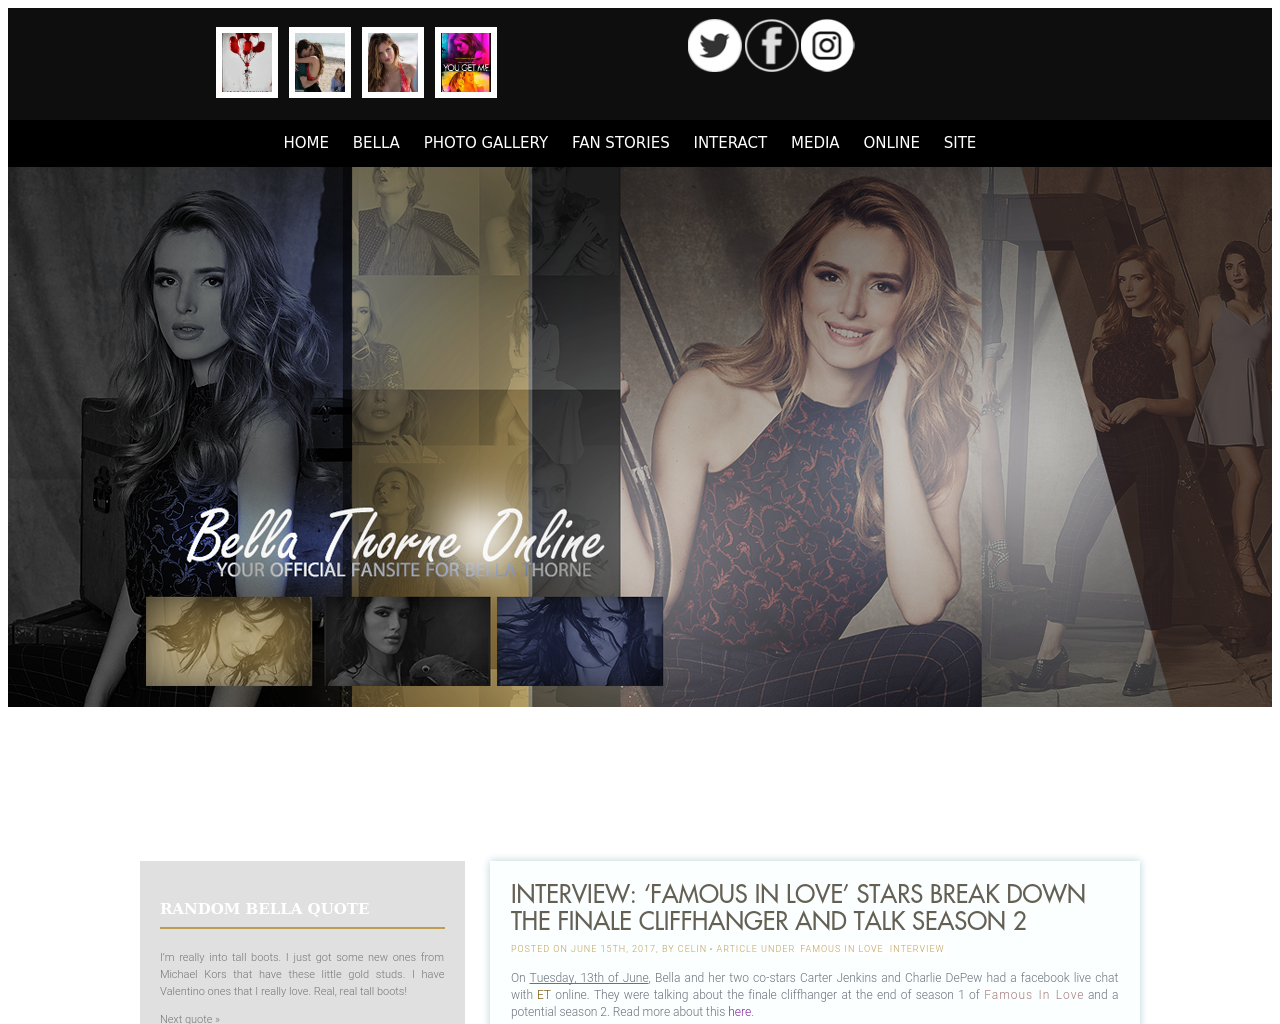 Bella-Thorne-Online.com-Advertising-Reviews-Pricing